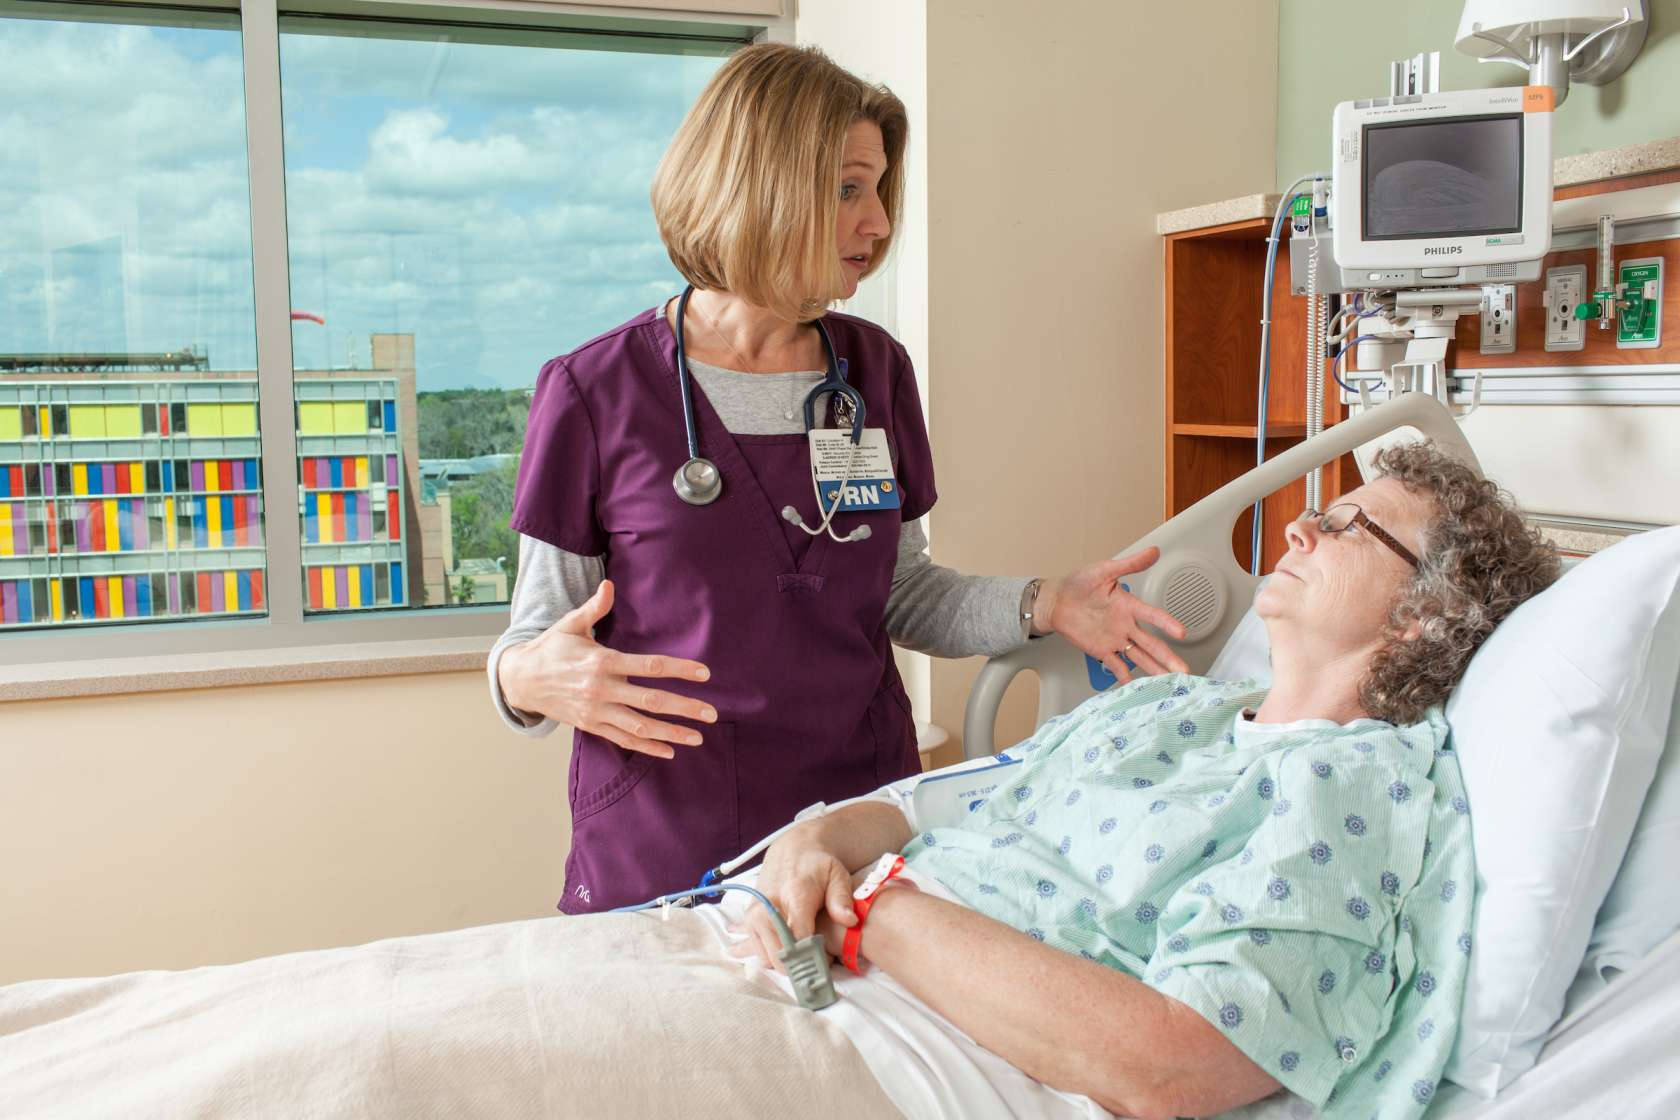 A nurse talks with a patient in the hospital